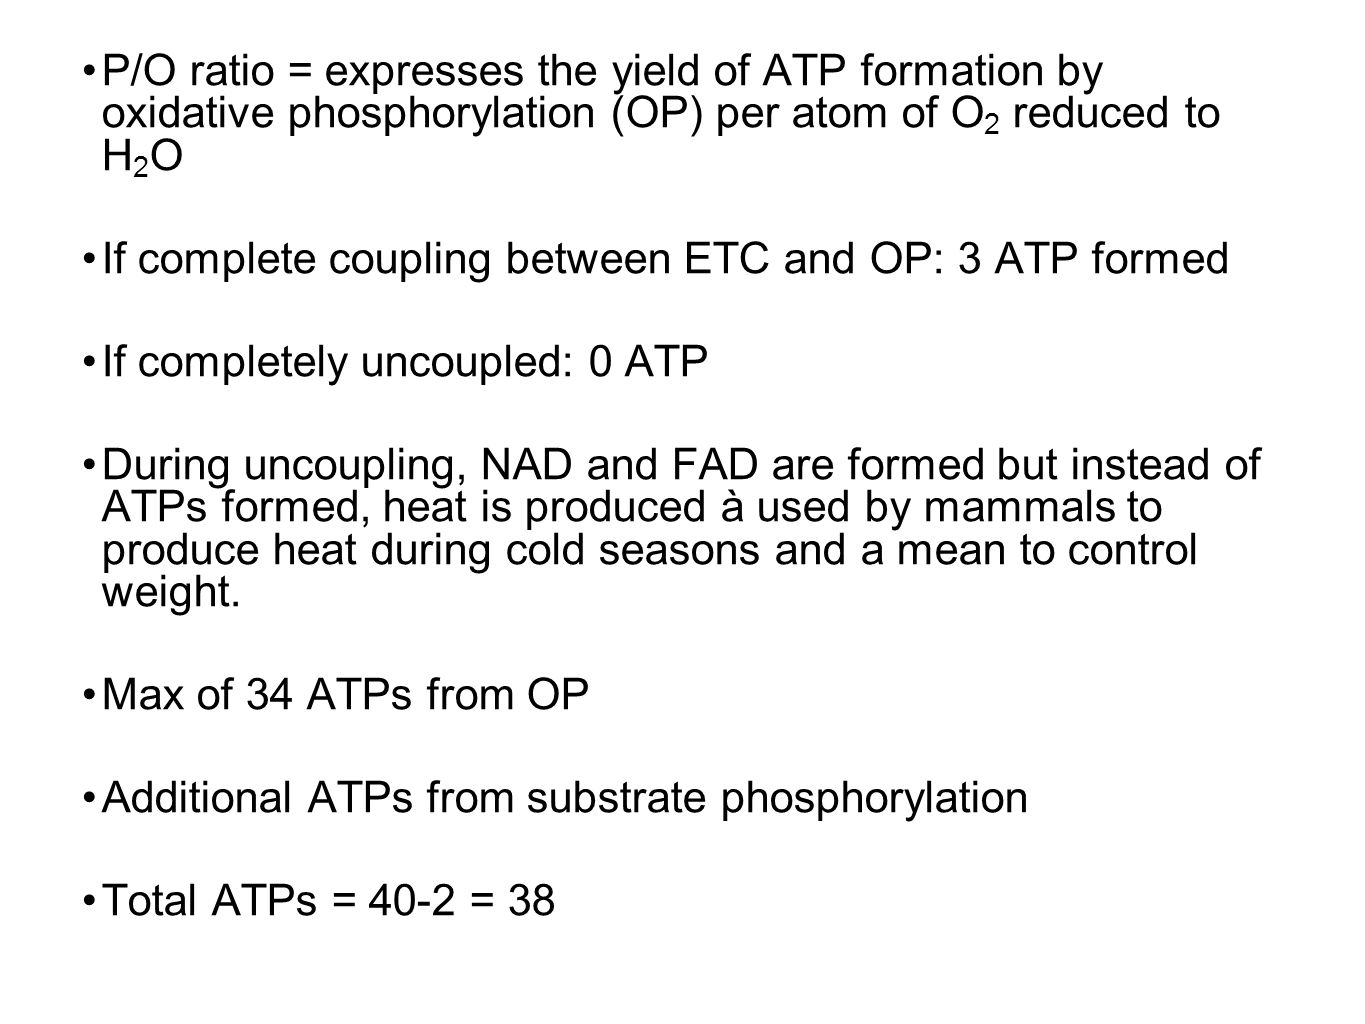 P/O ratio = expresses the yield of ATP formation by oxidative phosphorylation (OP) per atom of O2 reduced to H2O